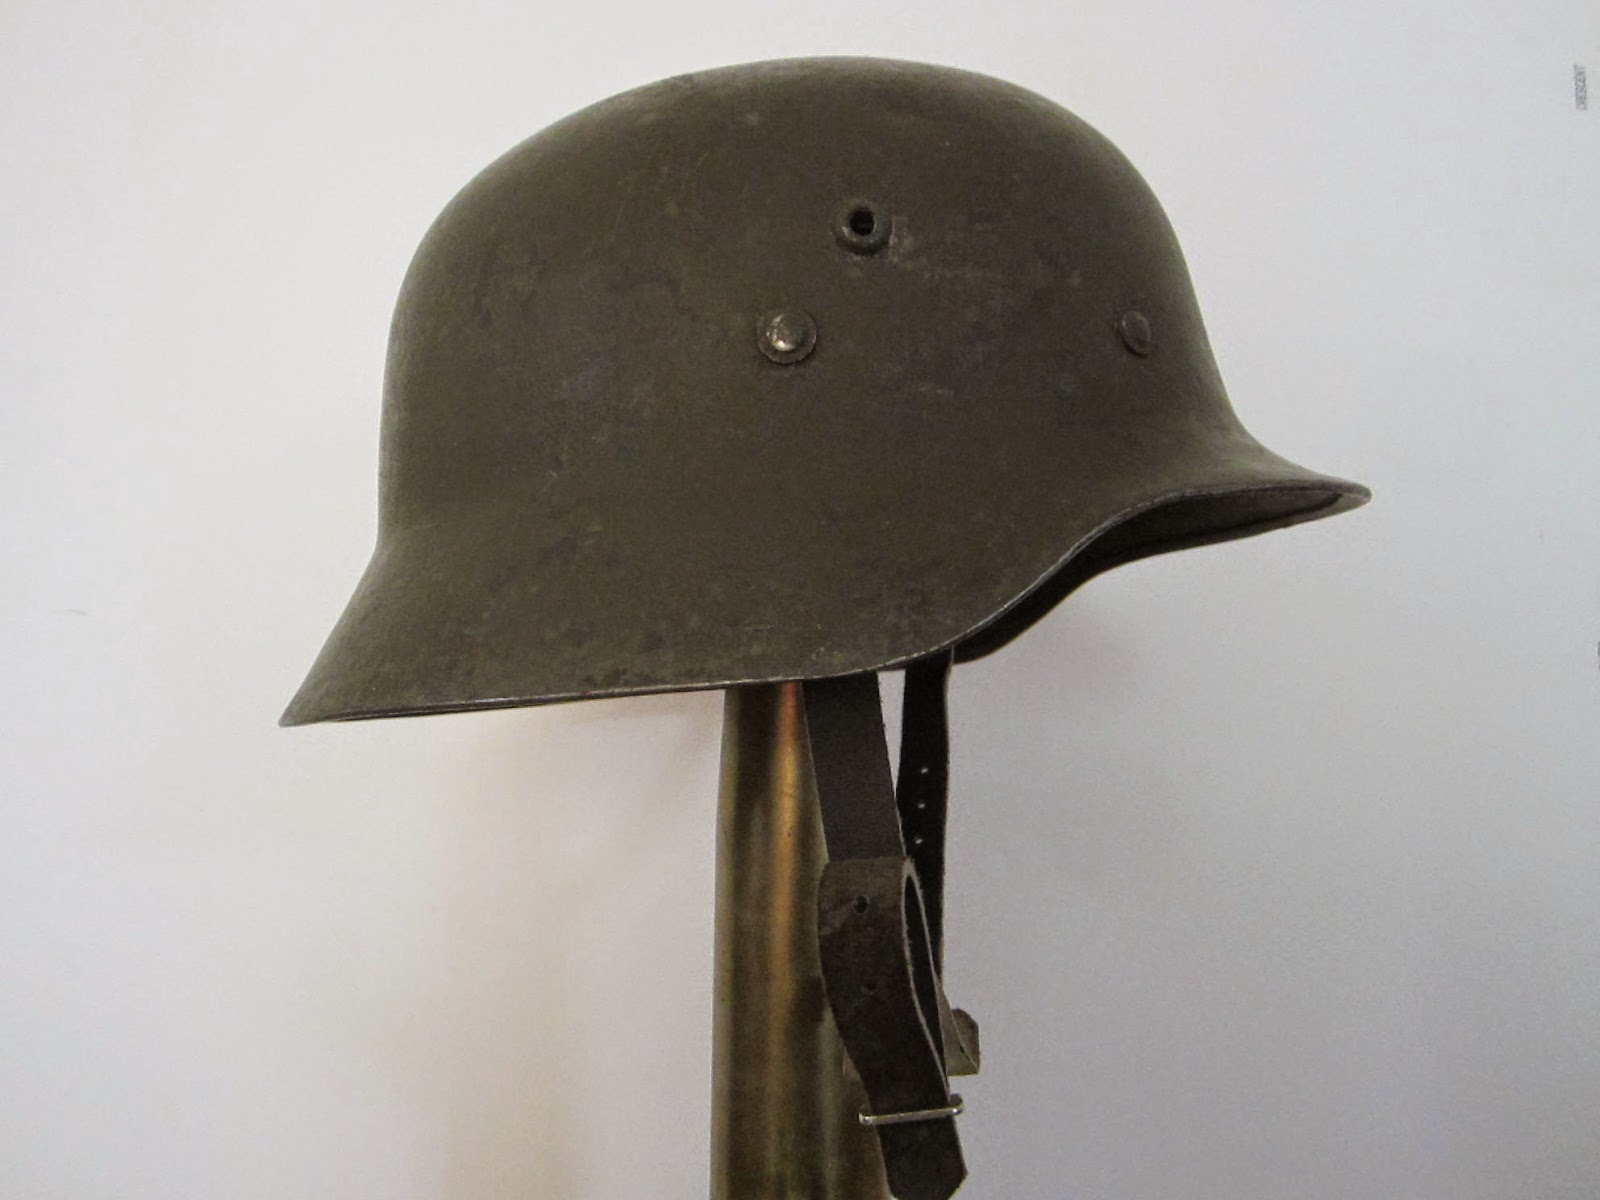 Mannie Gentile: Combat Helmets of the 20th Century